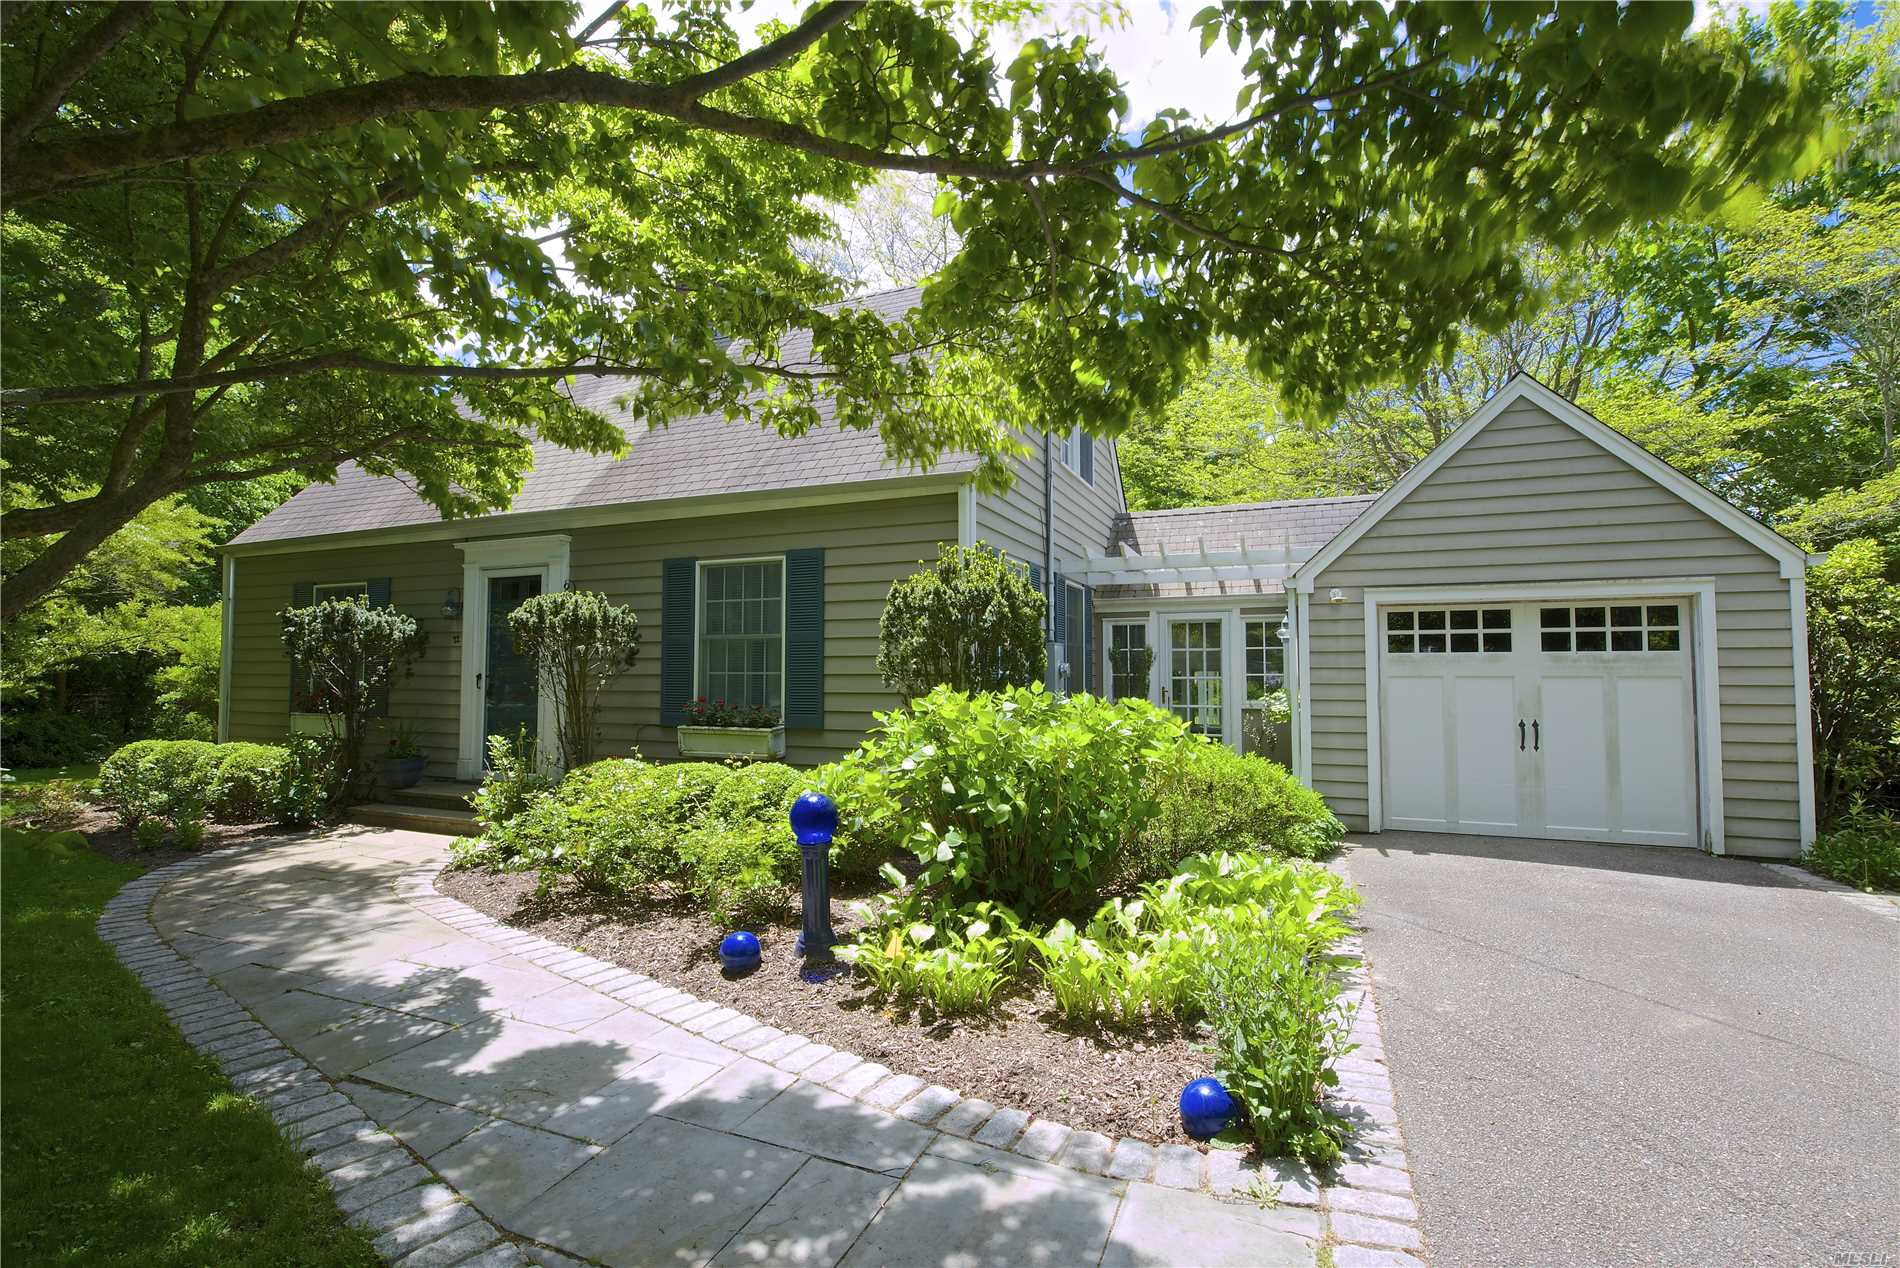 Well maintained cape on quiet, tree-lined street, hardwood floors through out, state of the art kitchen with marble countertops, sun room with radiant heated floors, gas fireplace.